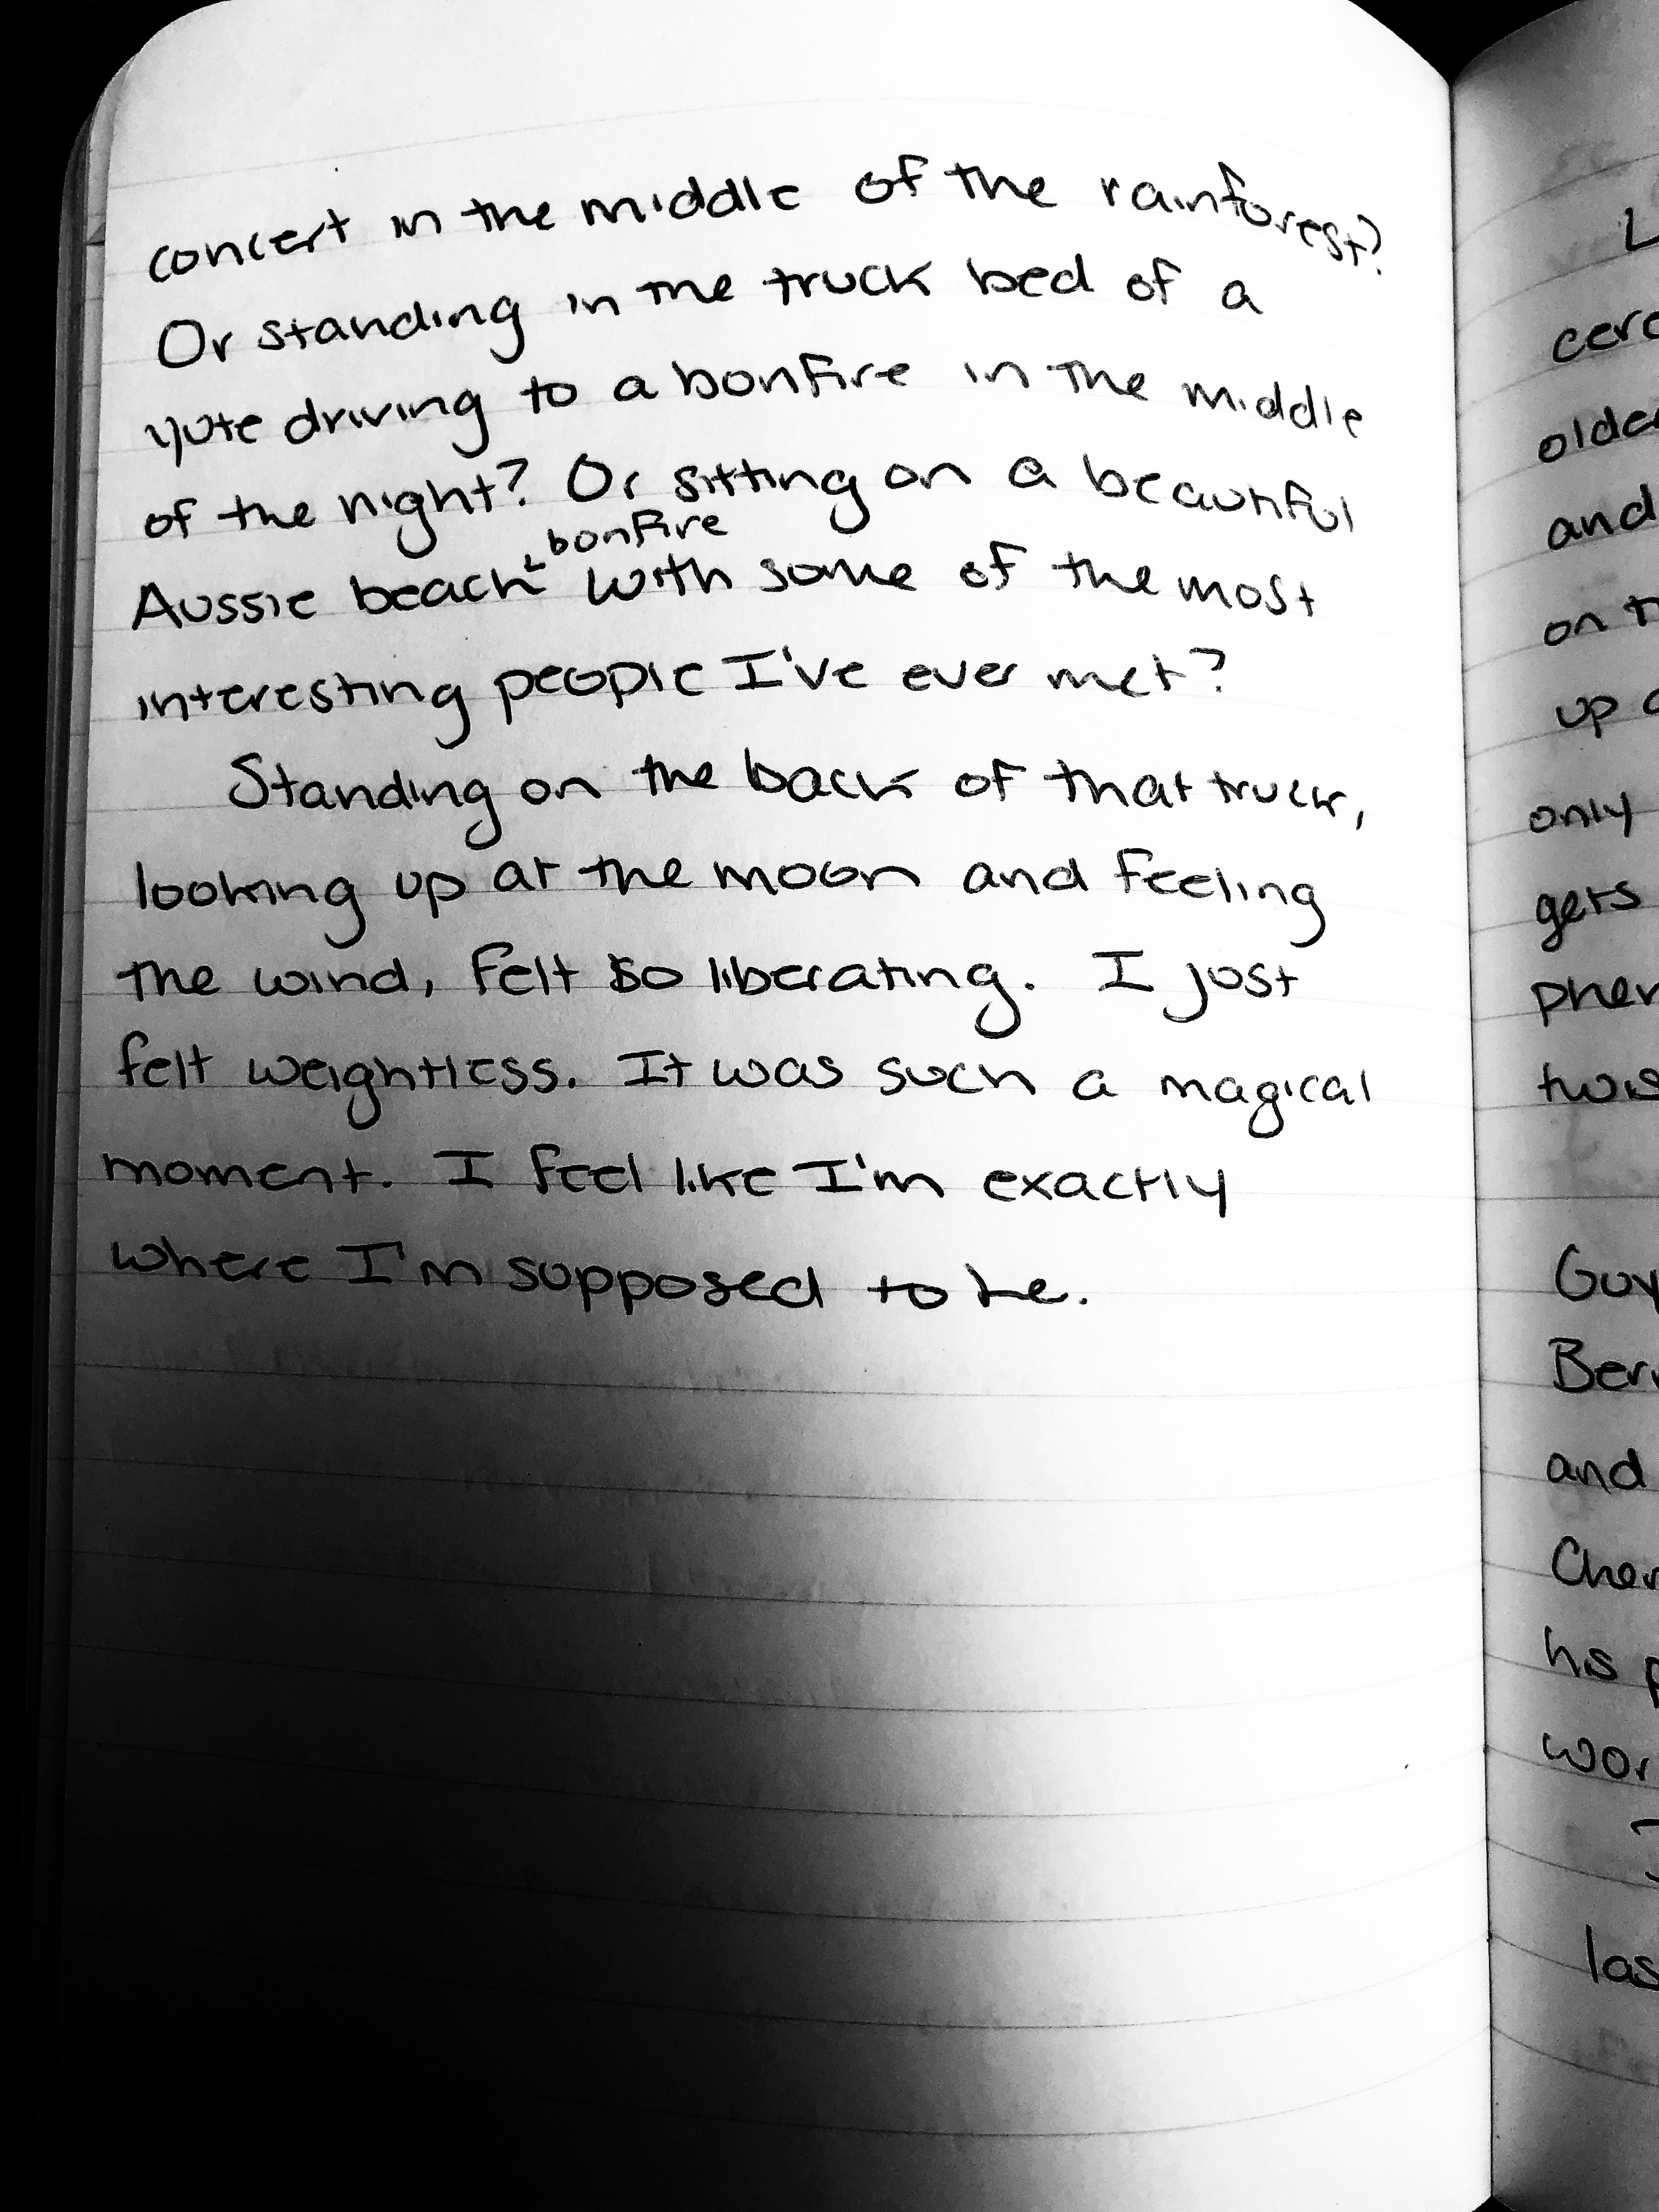 picture of a journal entry from august 18